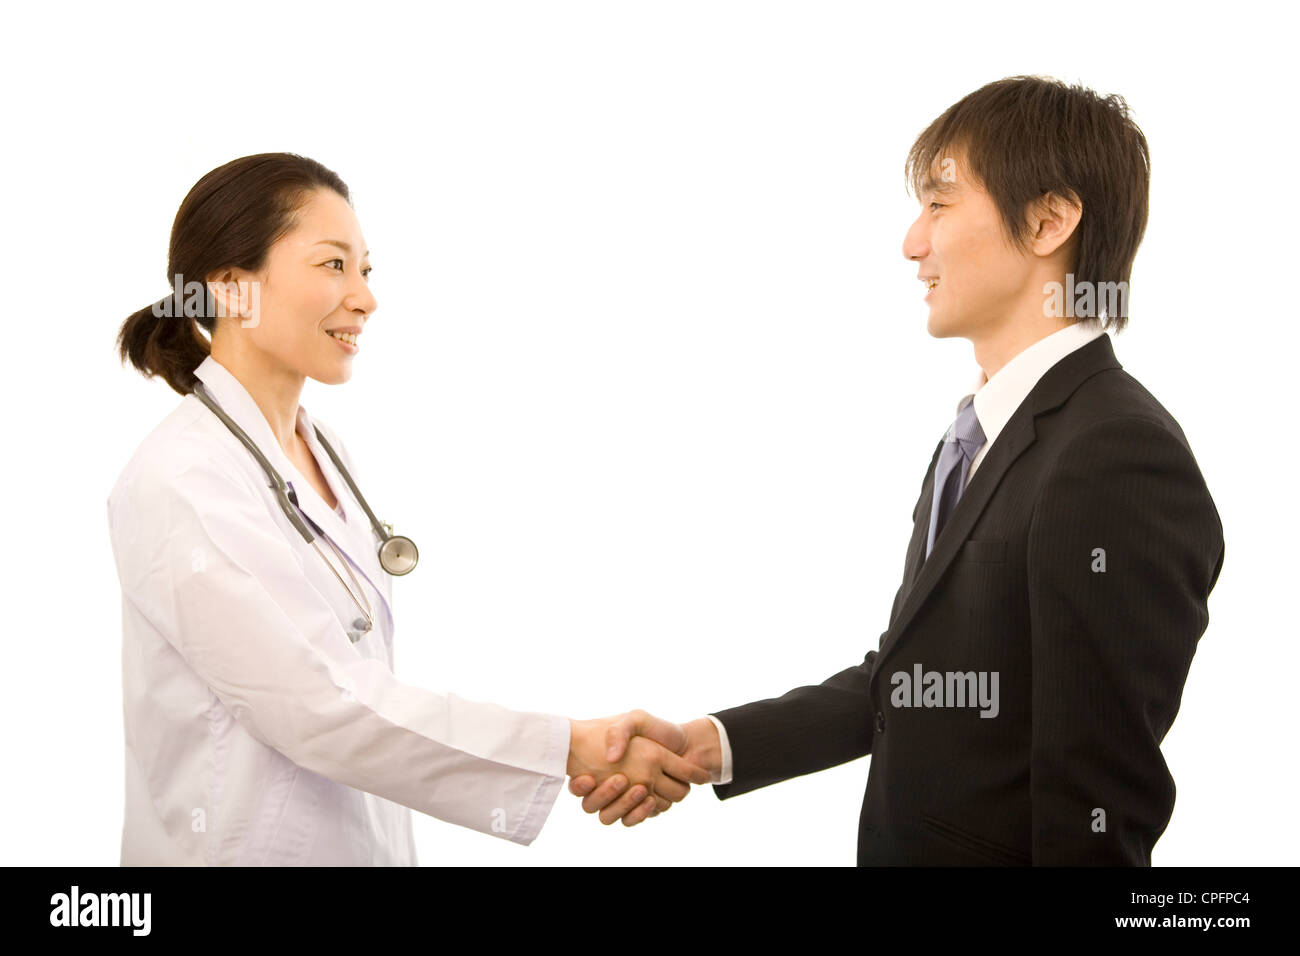 female doctor and pharmaceutical s representative shaking female doctor and pharmaceutical s representative shaking hands